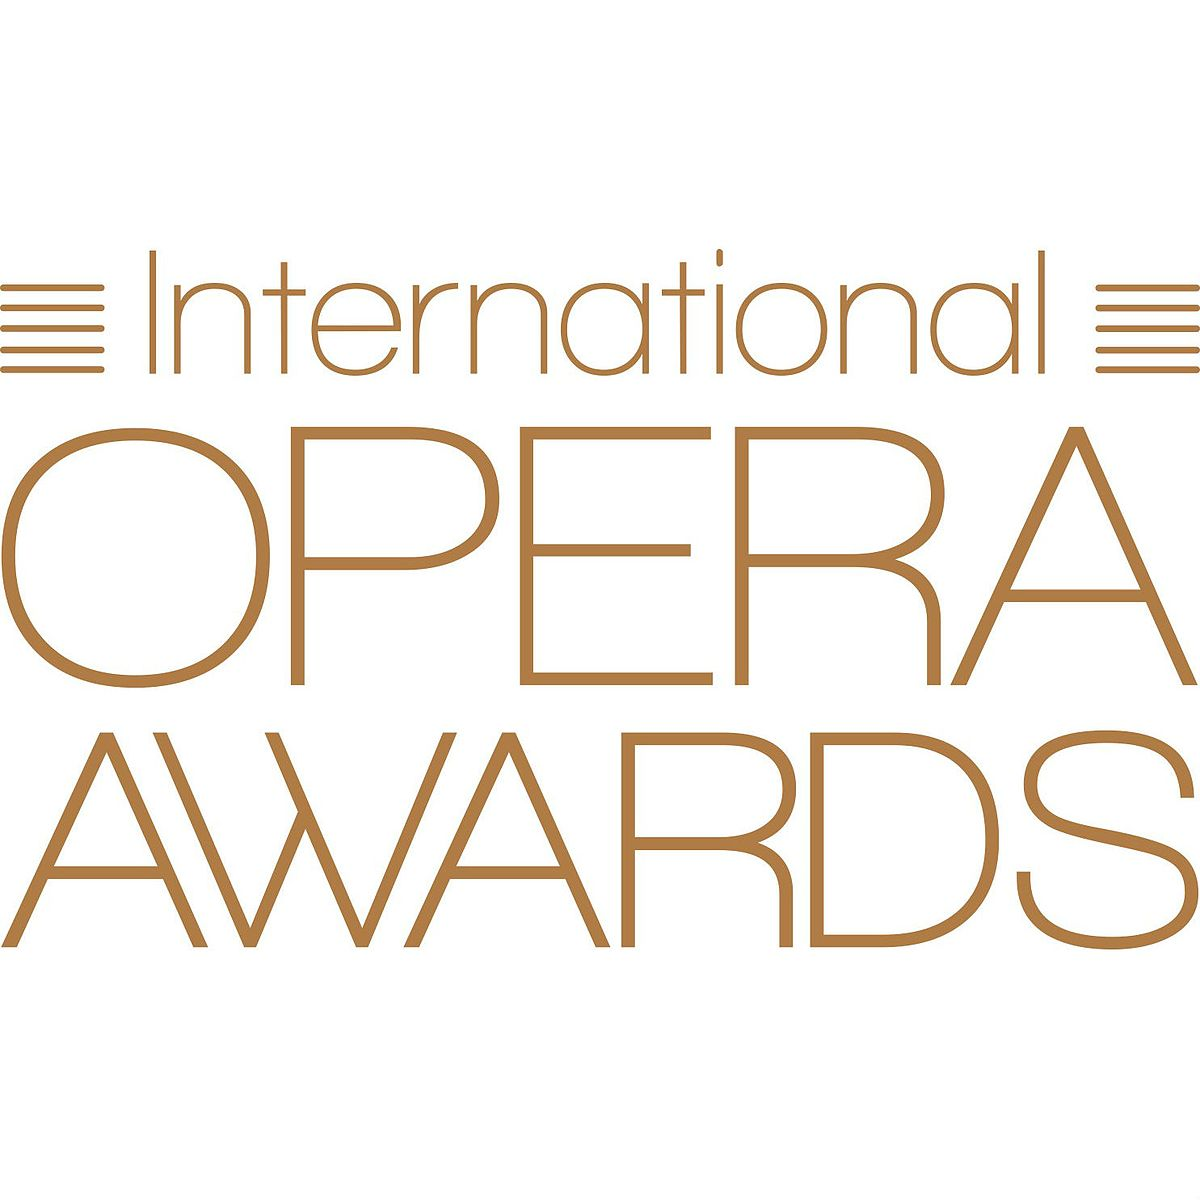 Supported by the International Opera Awards